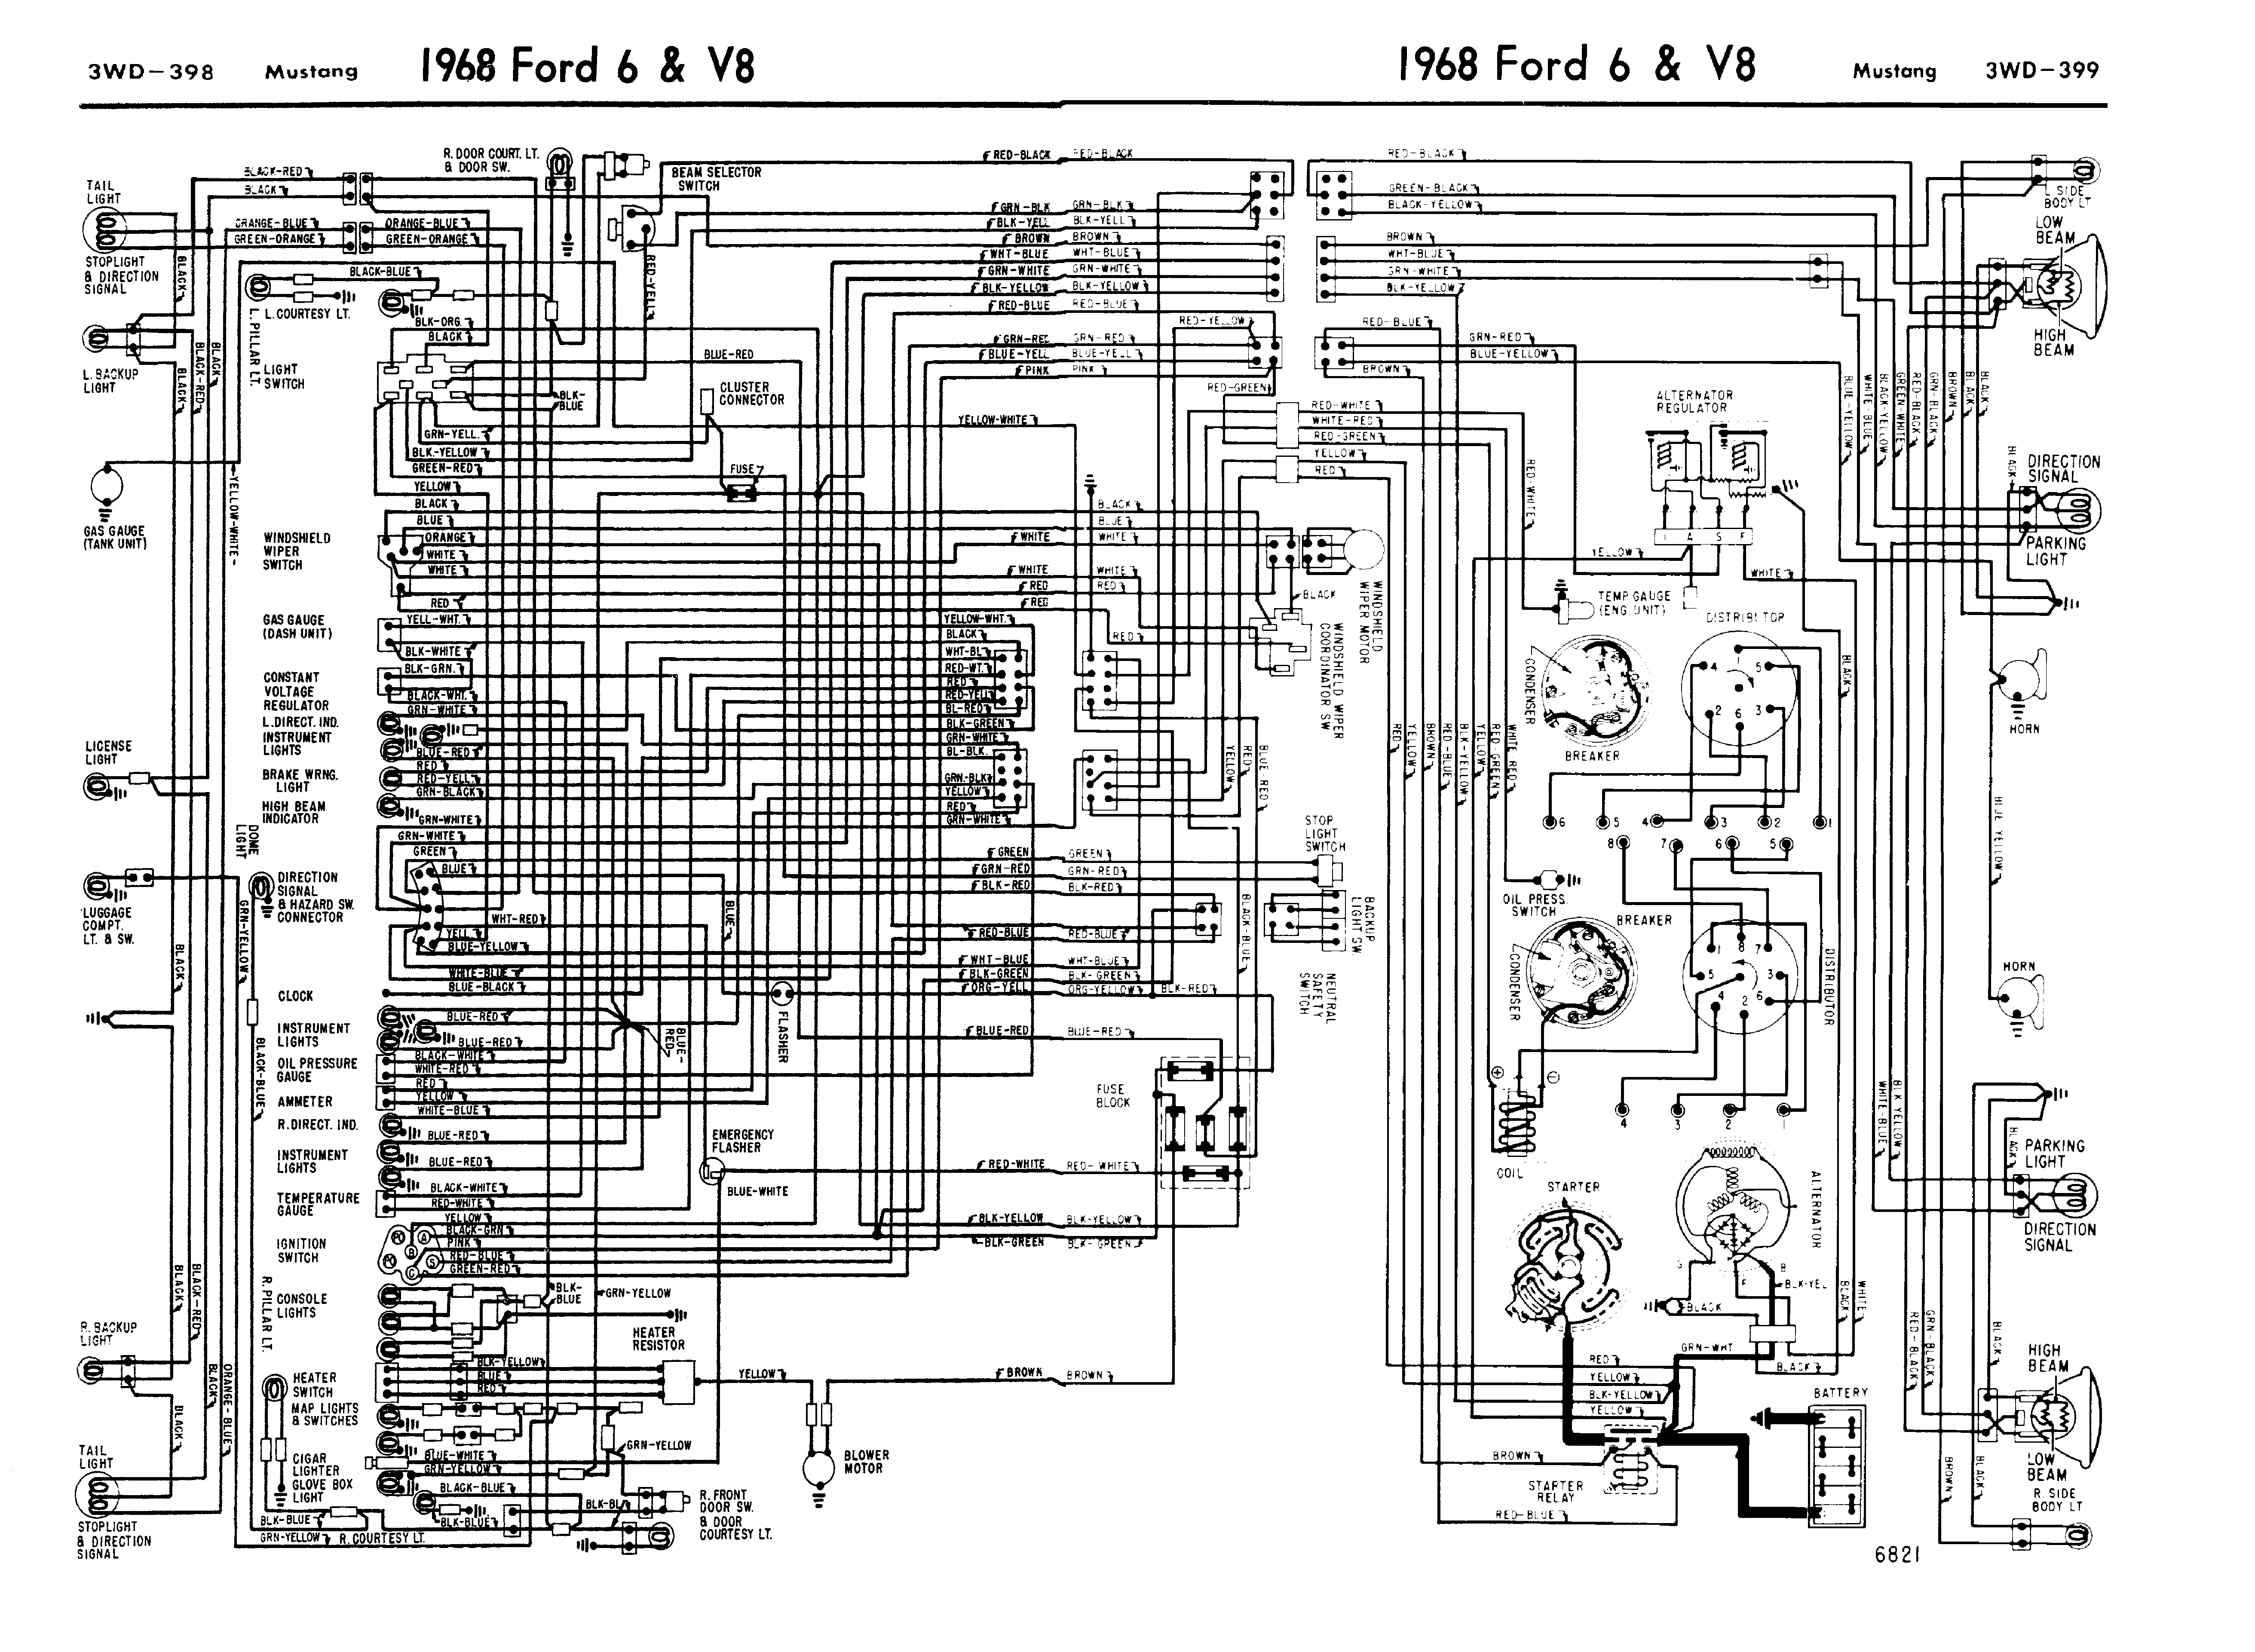 1968 mustang wiring diagrams evolving software hd 1968 mustang wiring diagrams evolving software